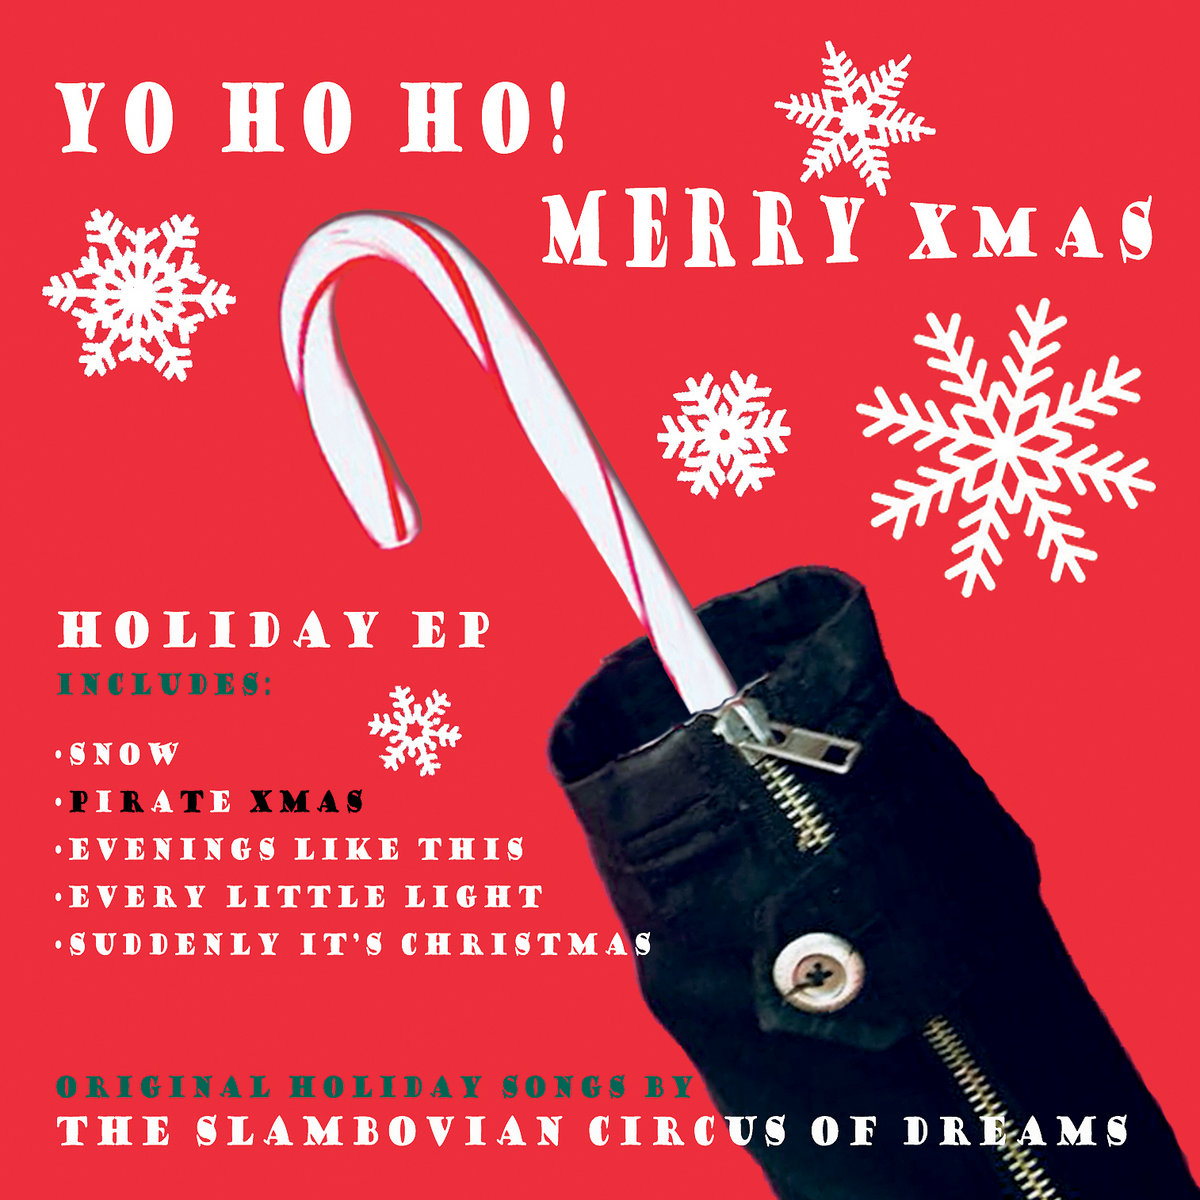 Ho ho ho merry christmas instamp3 song download.